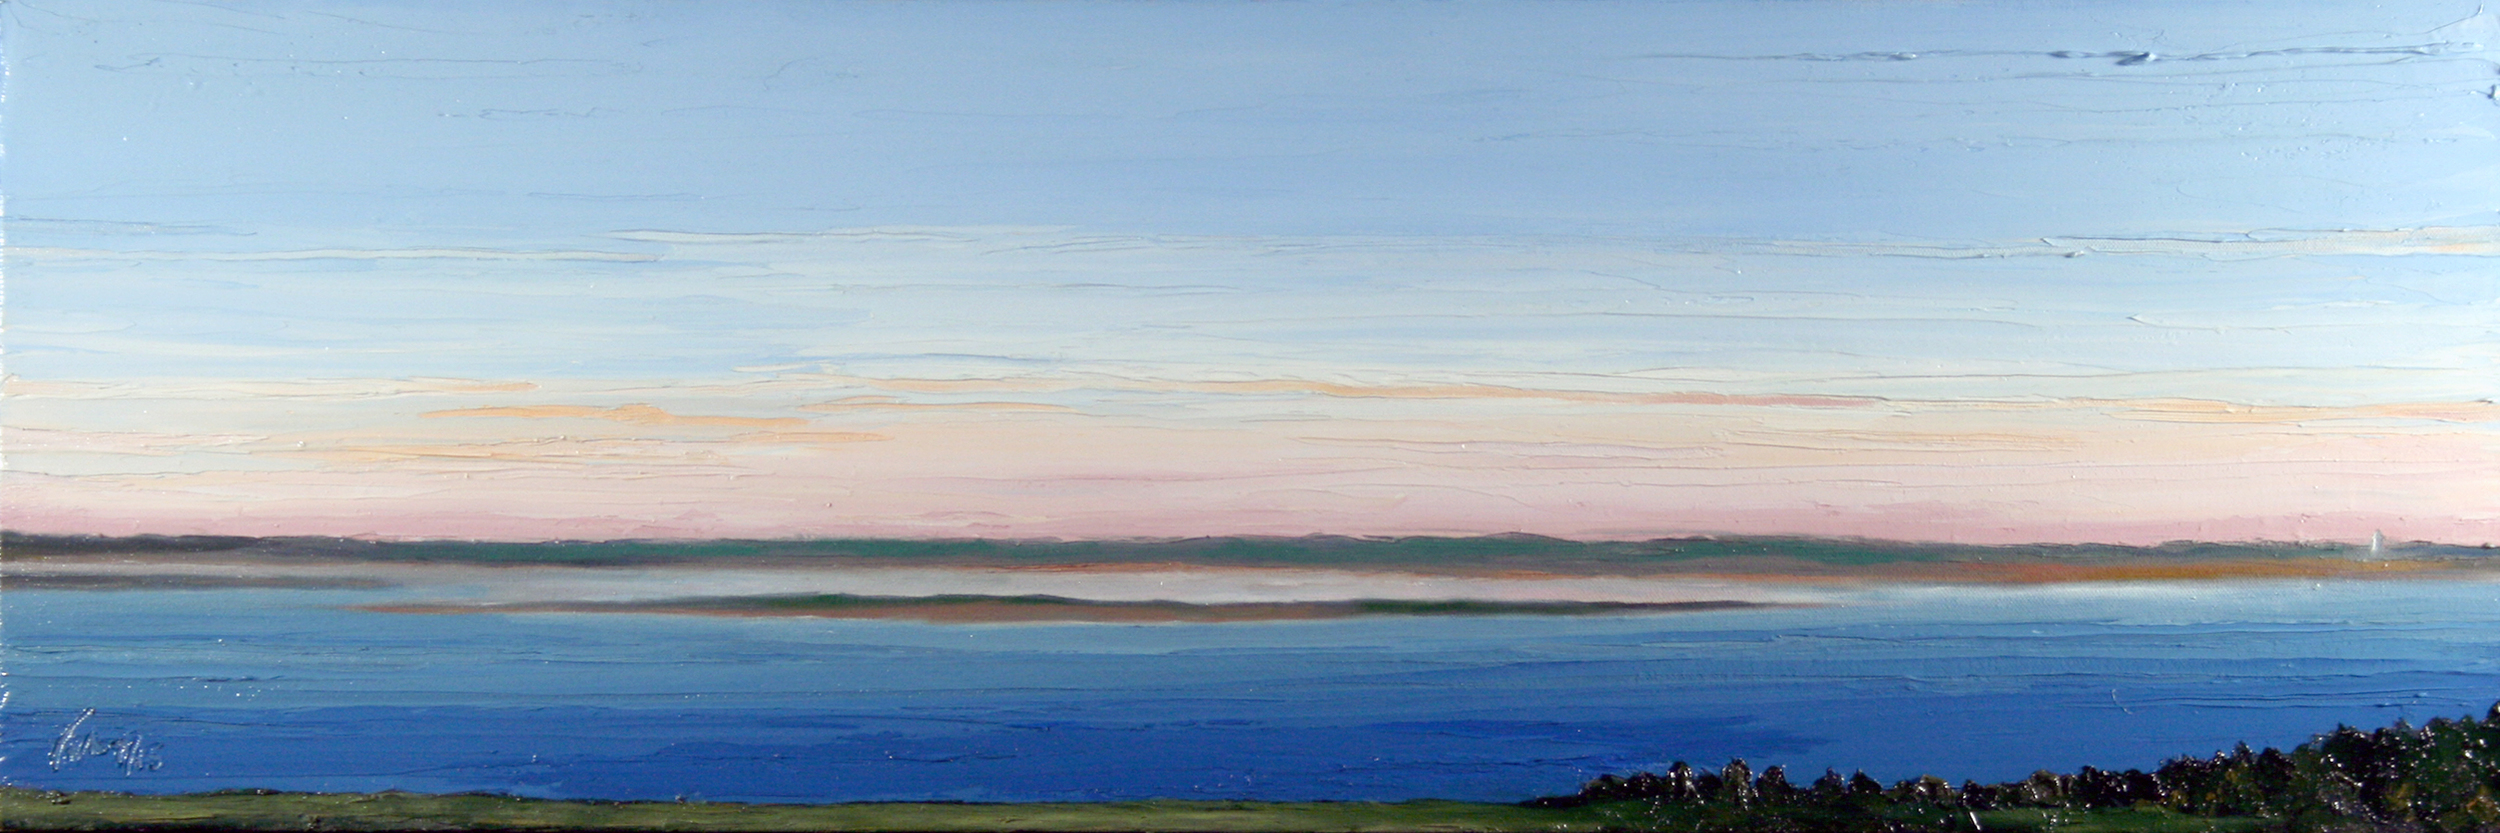 Donahue View - Barnstable MA to Chatham Light, oil on canvas, 12 by 36 inches, 2015 (commission/sold)